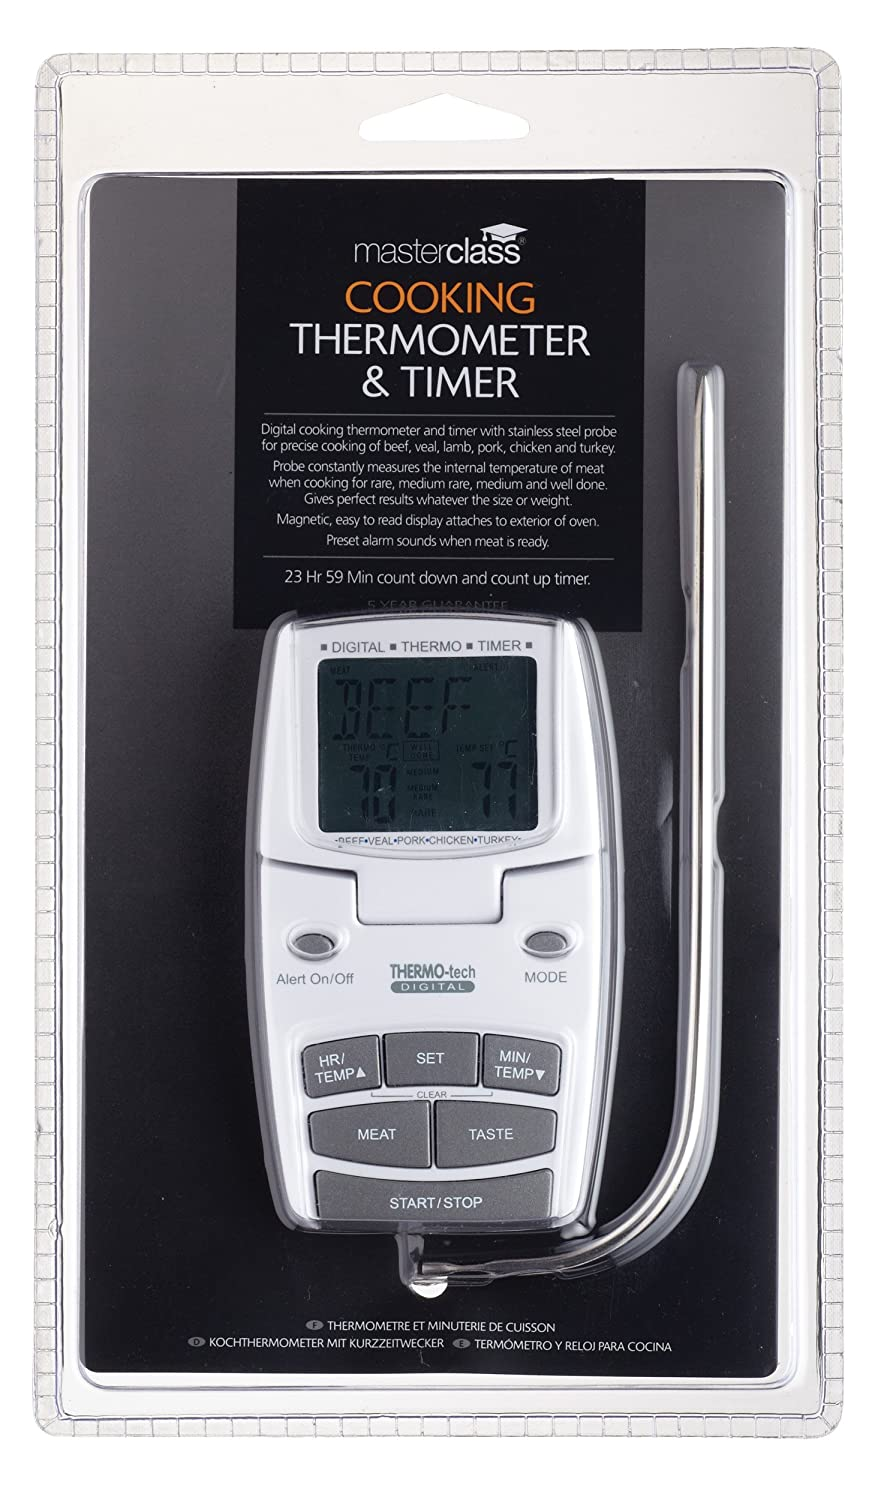 Amazon.com: Digital Meat Thermometer/Food Probe & Timer - Easy Cooking/Roast: Meat Thermometers: Kitchen & Dining